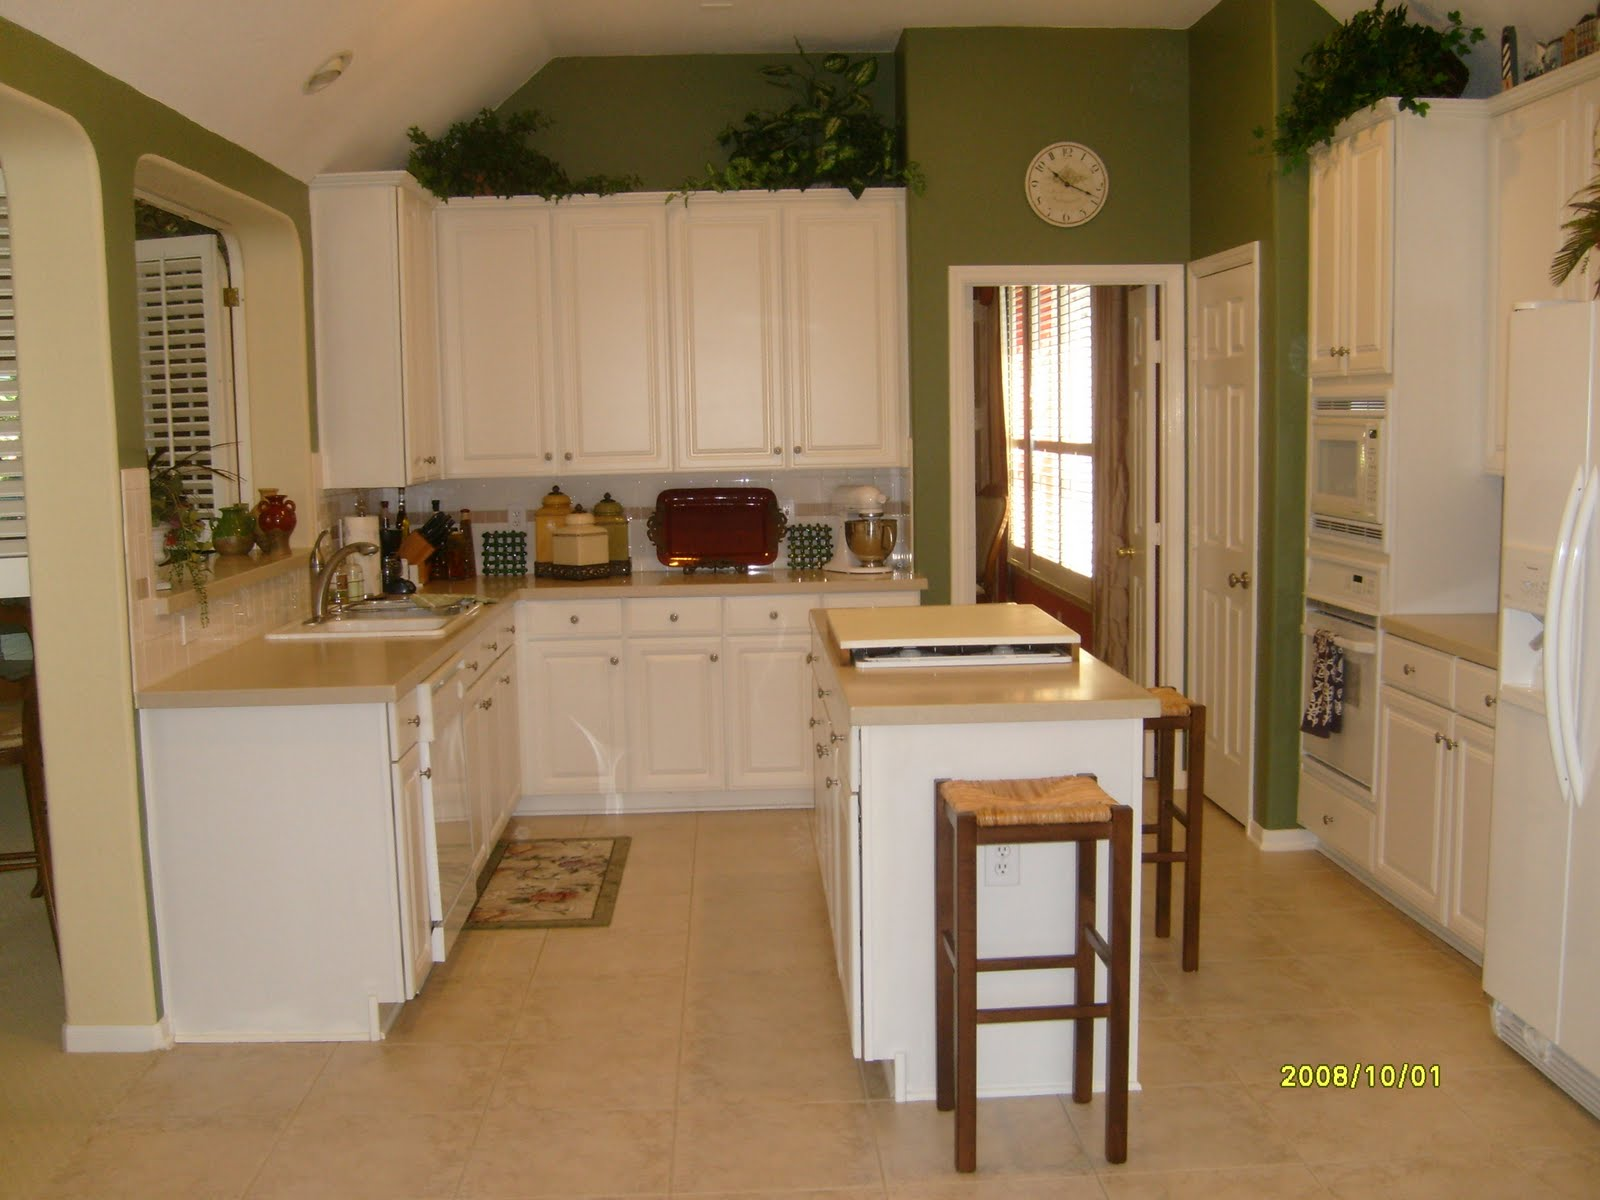 Design in the woods kitchen remodel before and after for Kitchen remodel before after